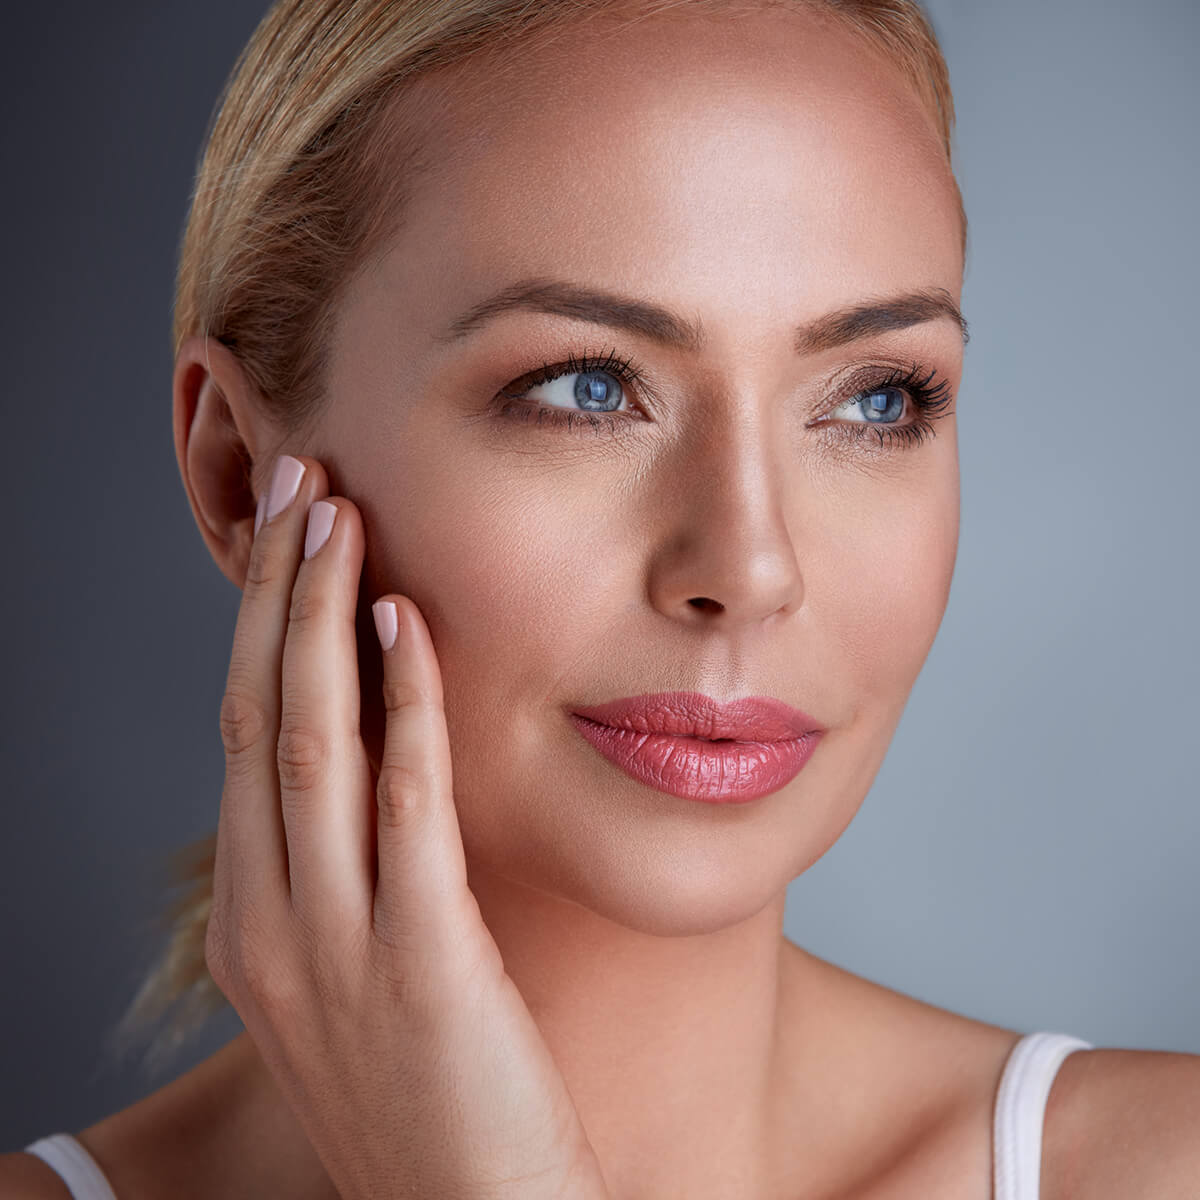 Dermatologist for Chemical Peel at Dermatology & Cosmetic Laser Center in Huntington NY Area